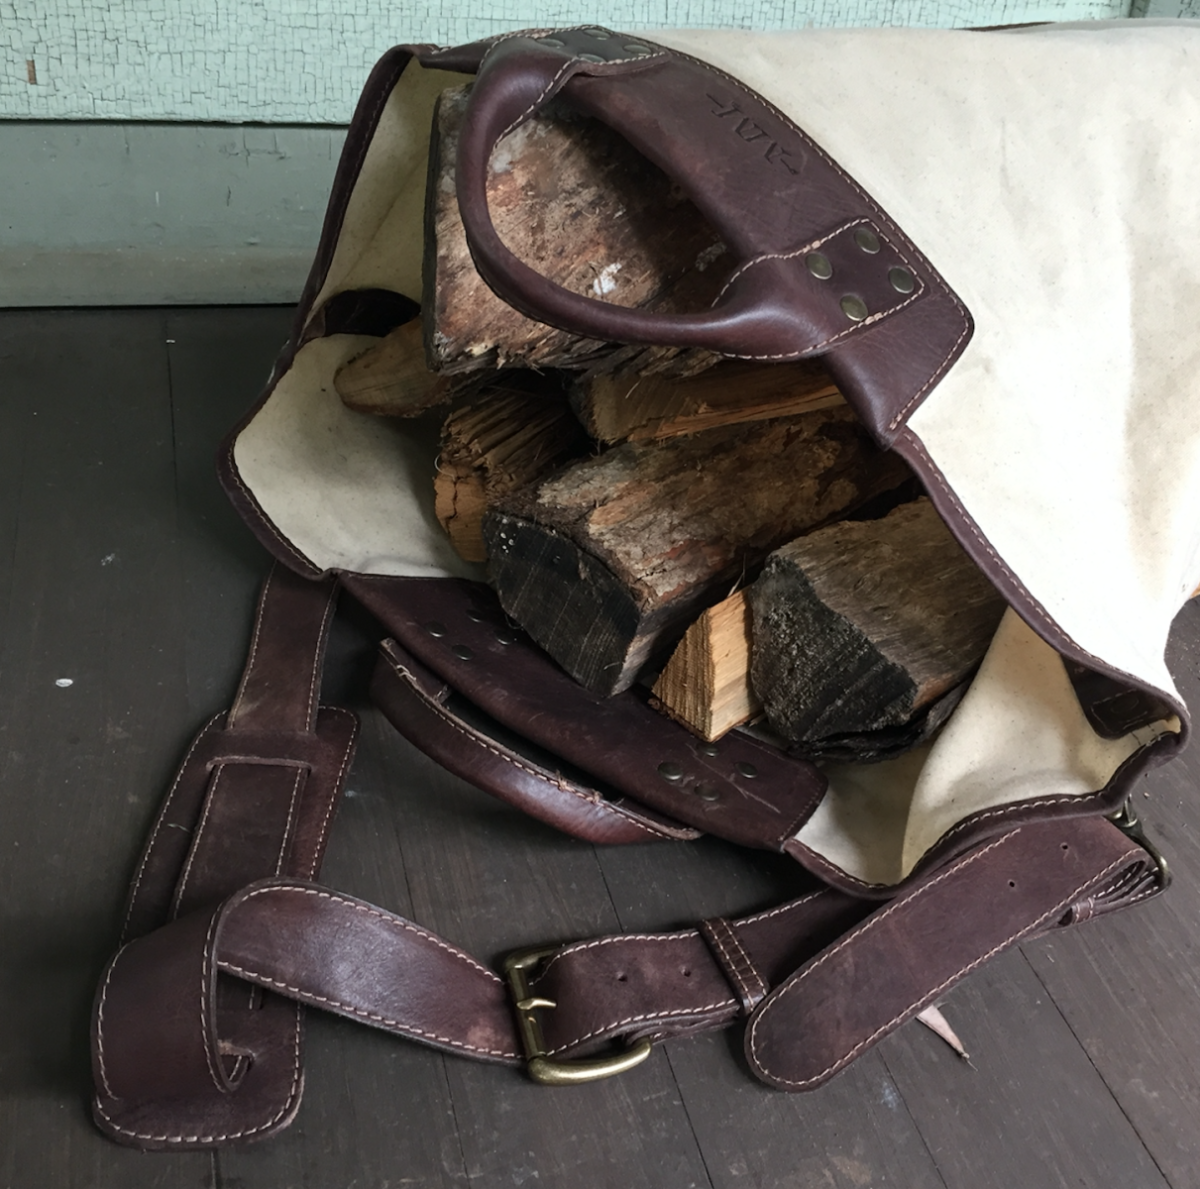 Firewood = no problem for this heavy-duty bag! Photo by Leslie WYlie.